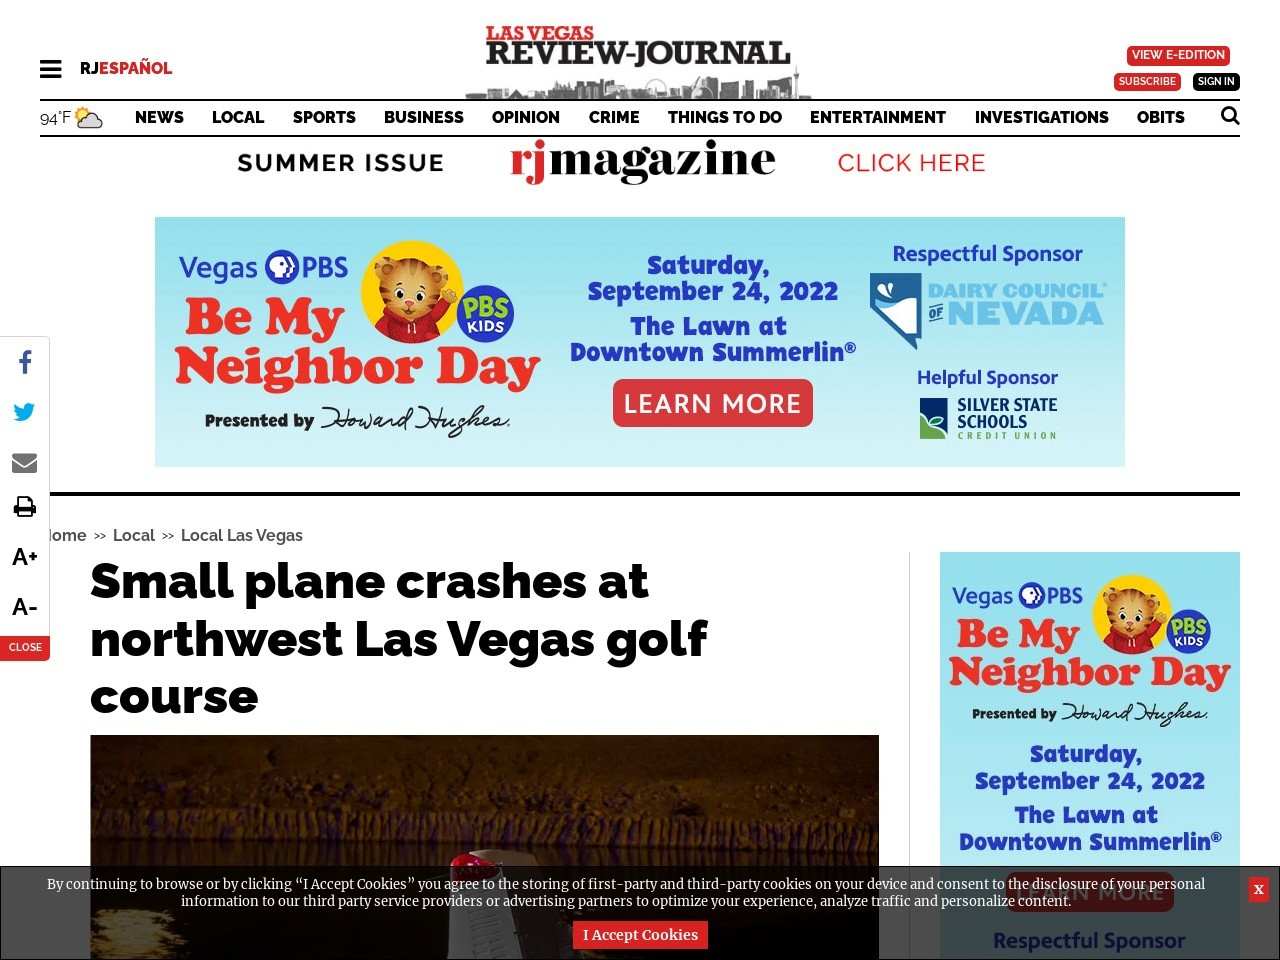 Small plane crashes at northwest Las Vegas golf course